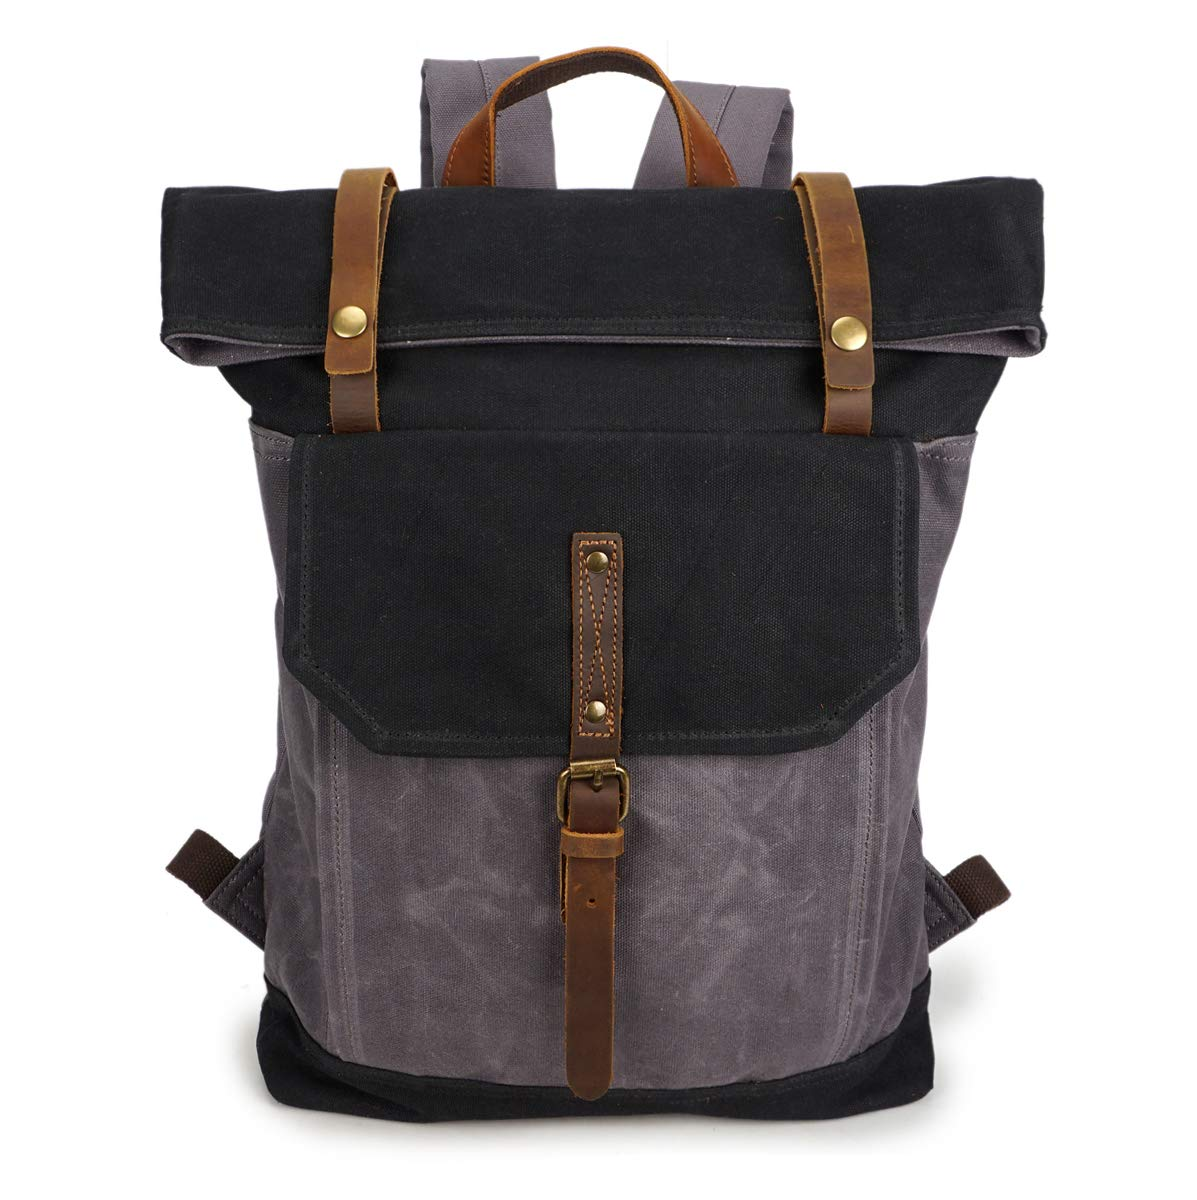 d724e9fe45ff Amazon.com: VICROAD Vintage Canvas Backpack, Leather Travel Bag for ...